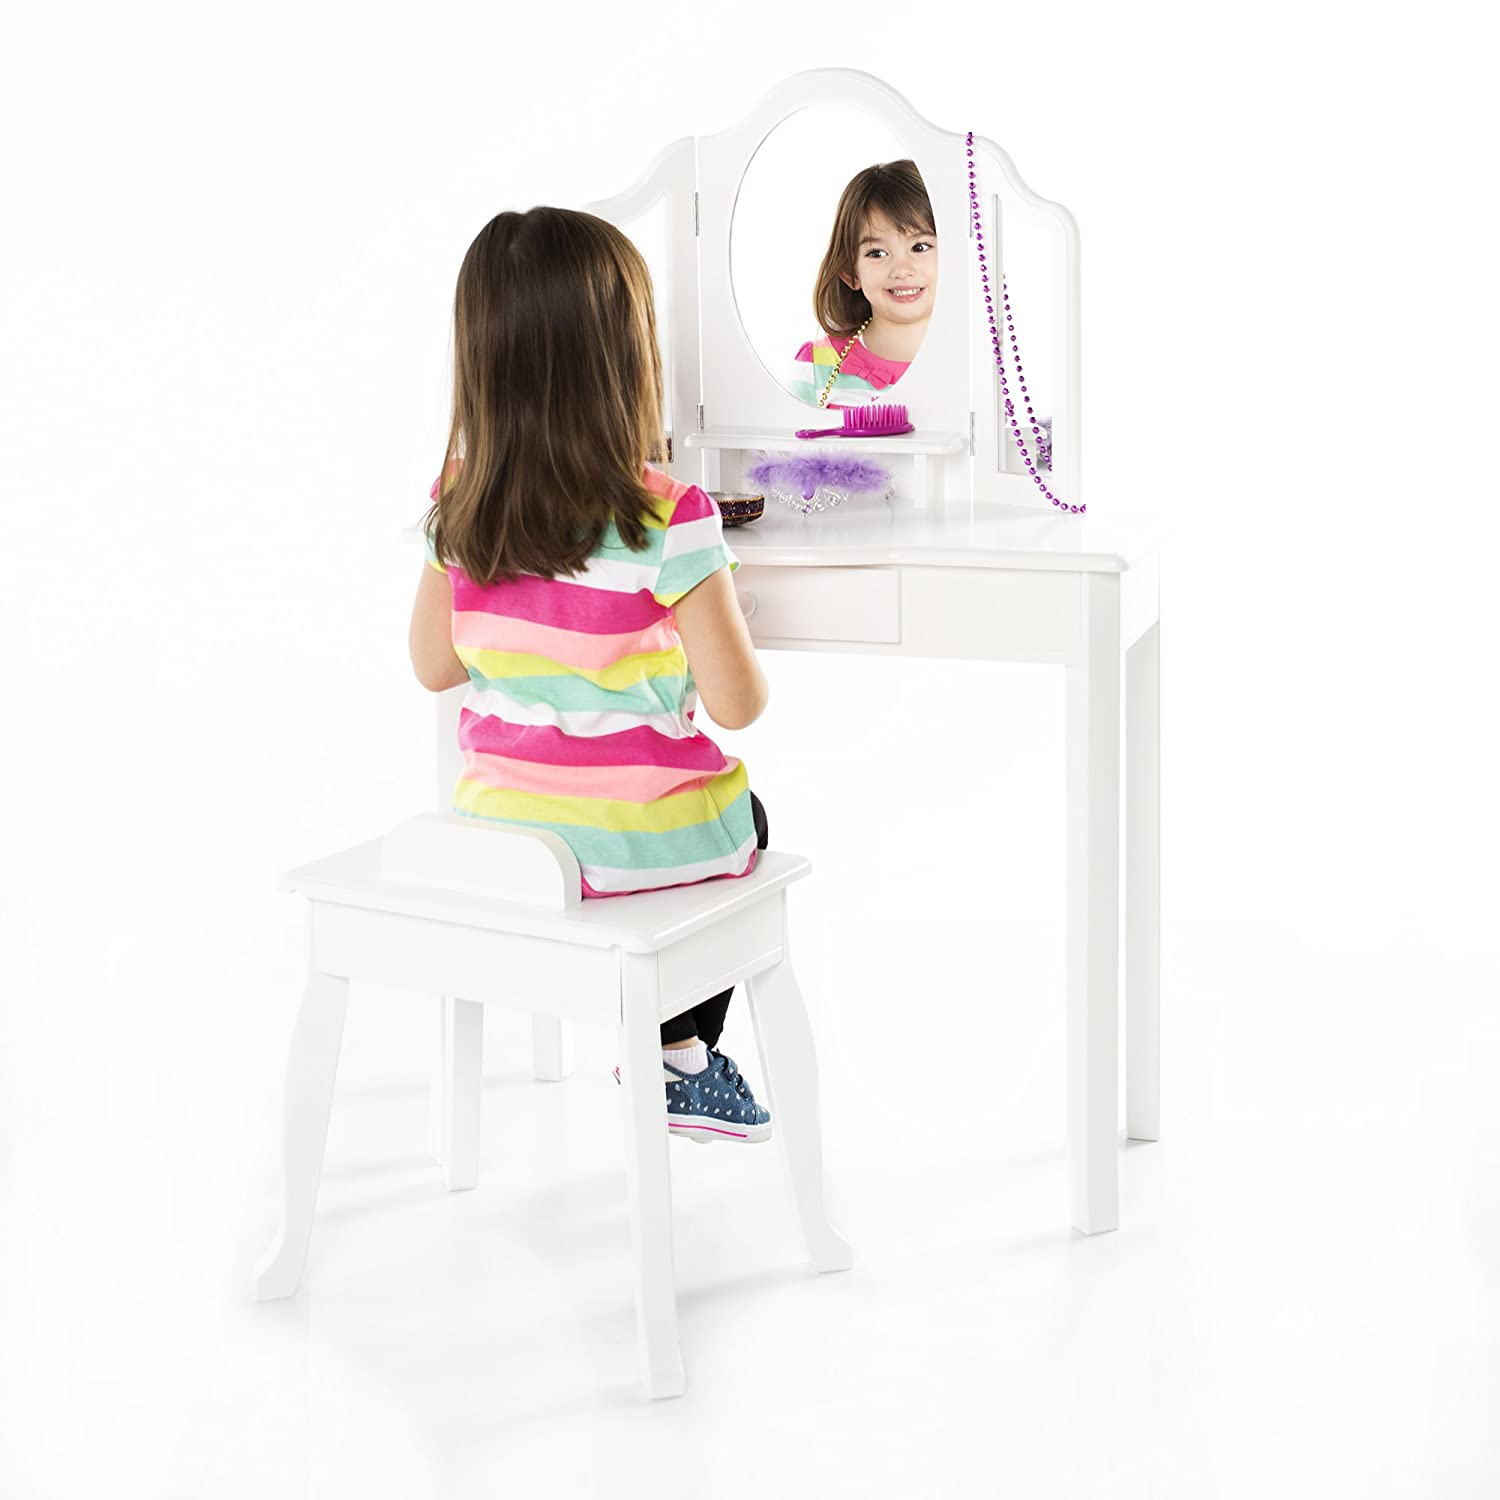 Guidecraft Classic White Vanity and Stool Set: Kids' Wooden Table with 3 Mirrors, Storage Seat and Make-Up Drawer - Children's Furniture G85710